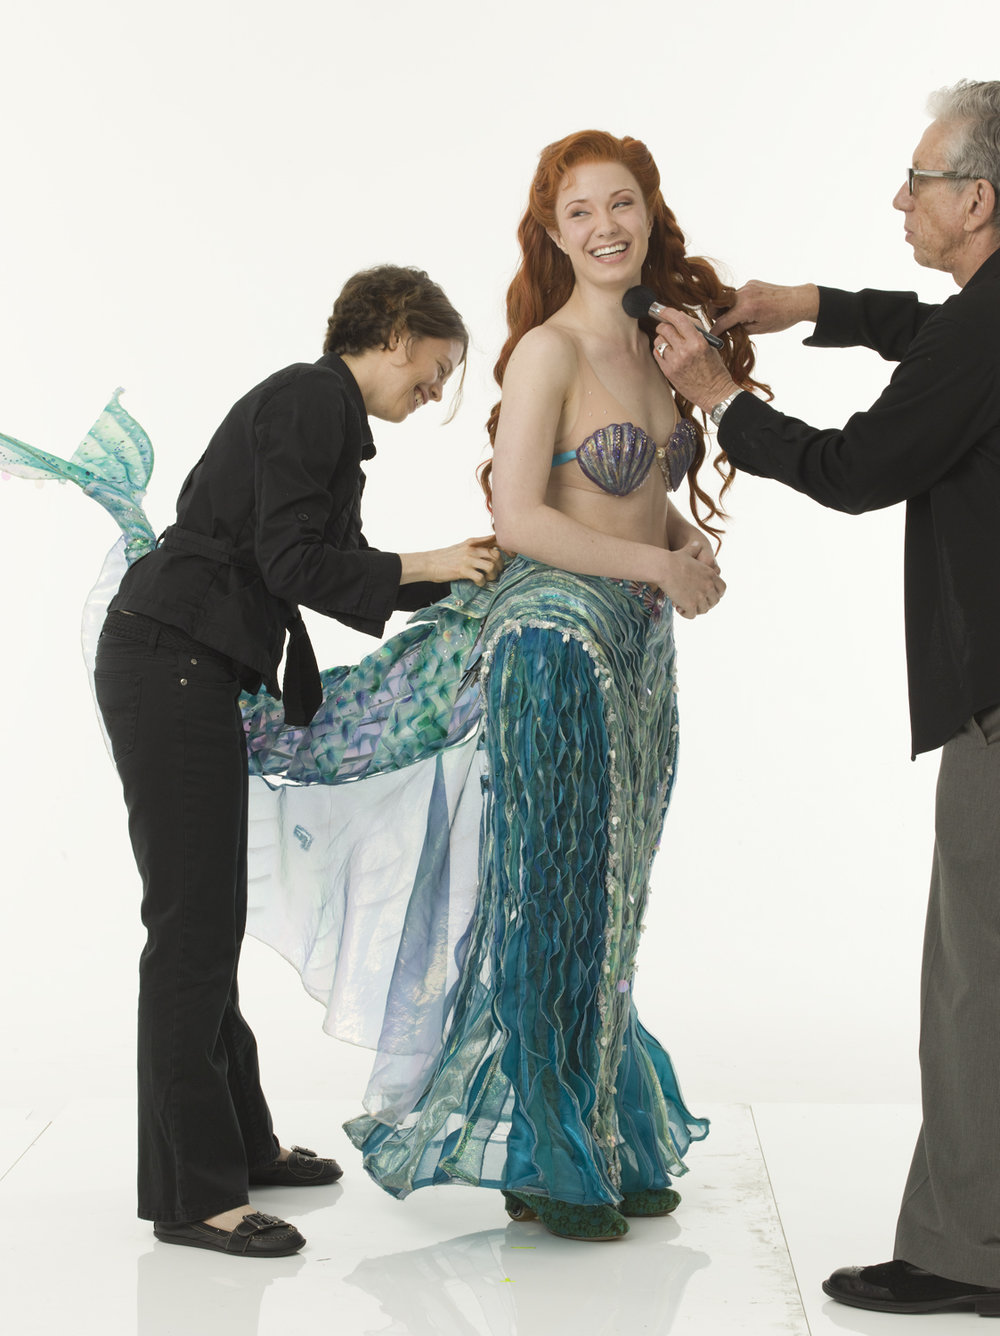 Sierra-Boggess-Little-Mermaid-Broadway-0804017_01_075.jpg